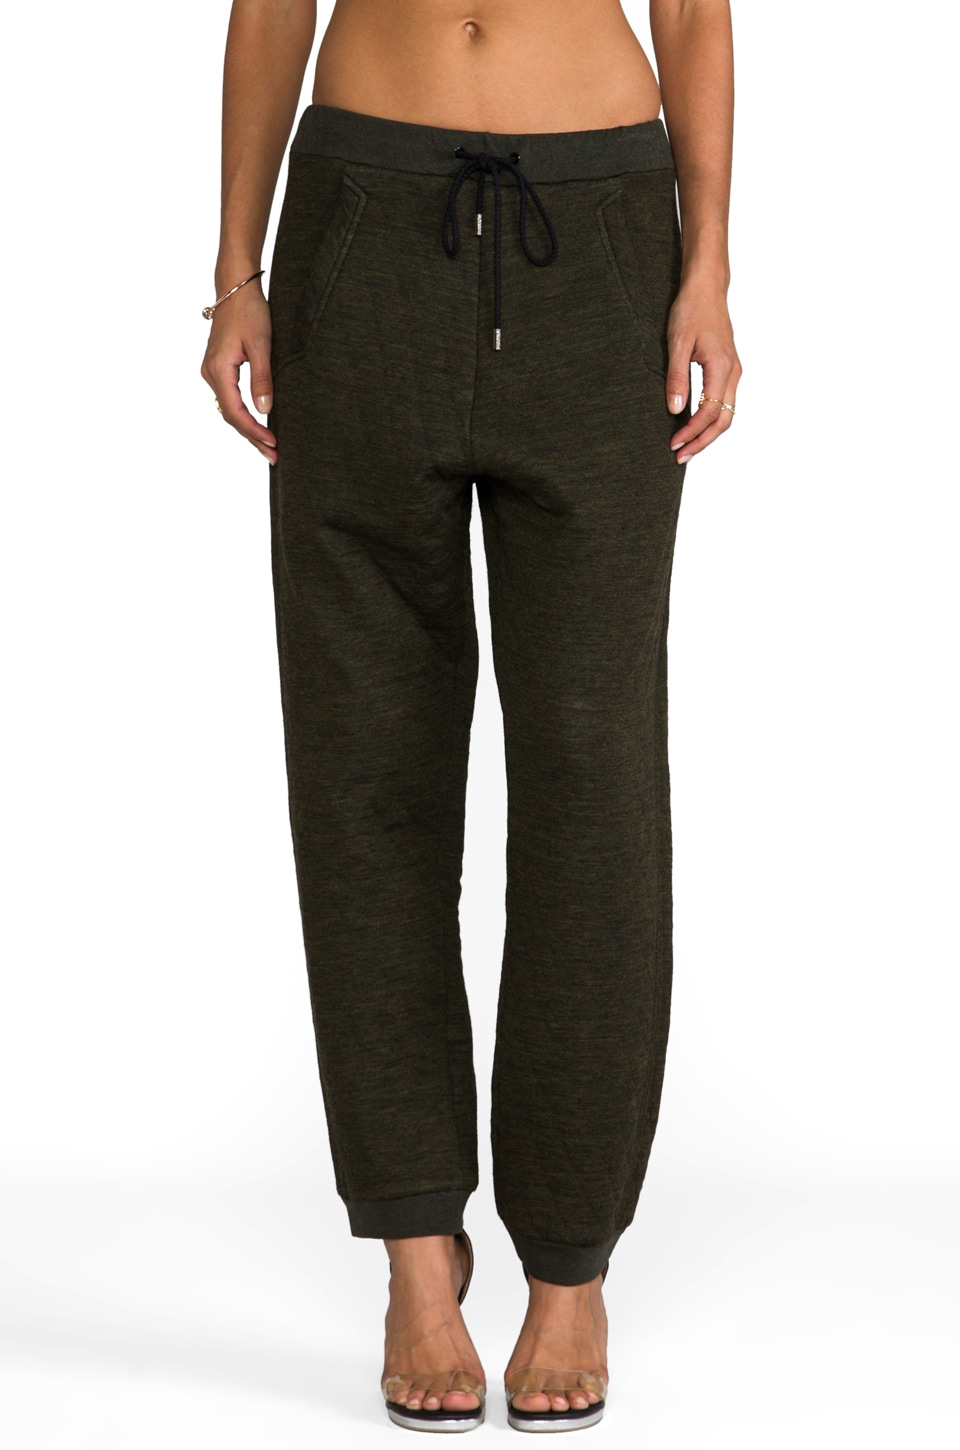 Francis Leon Stryker Pants in Green